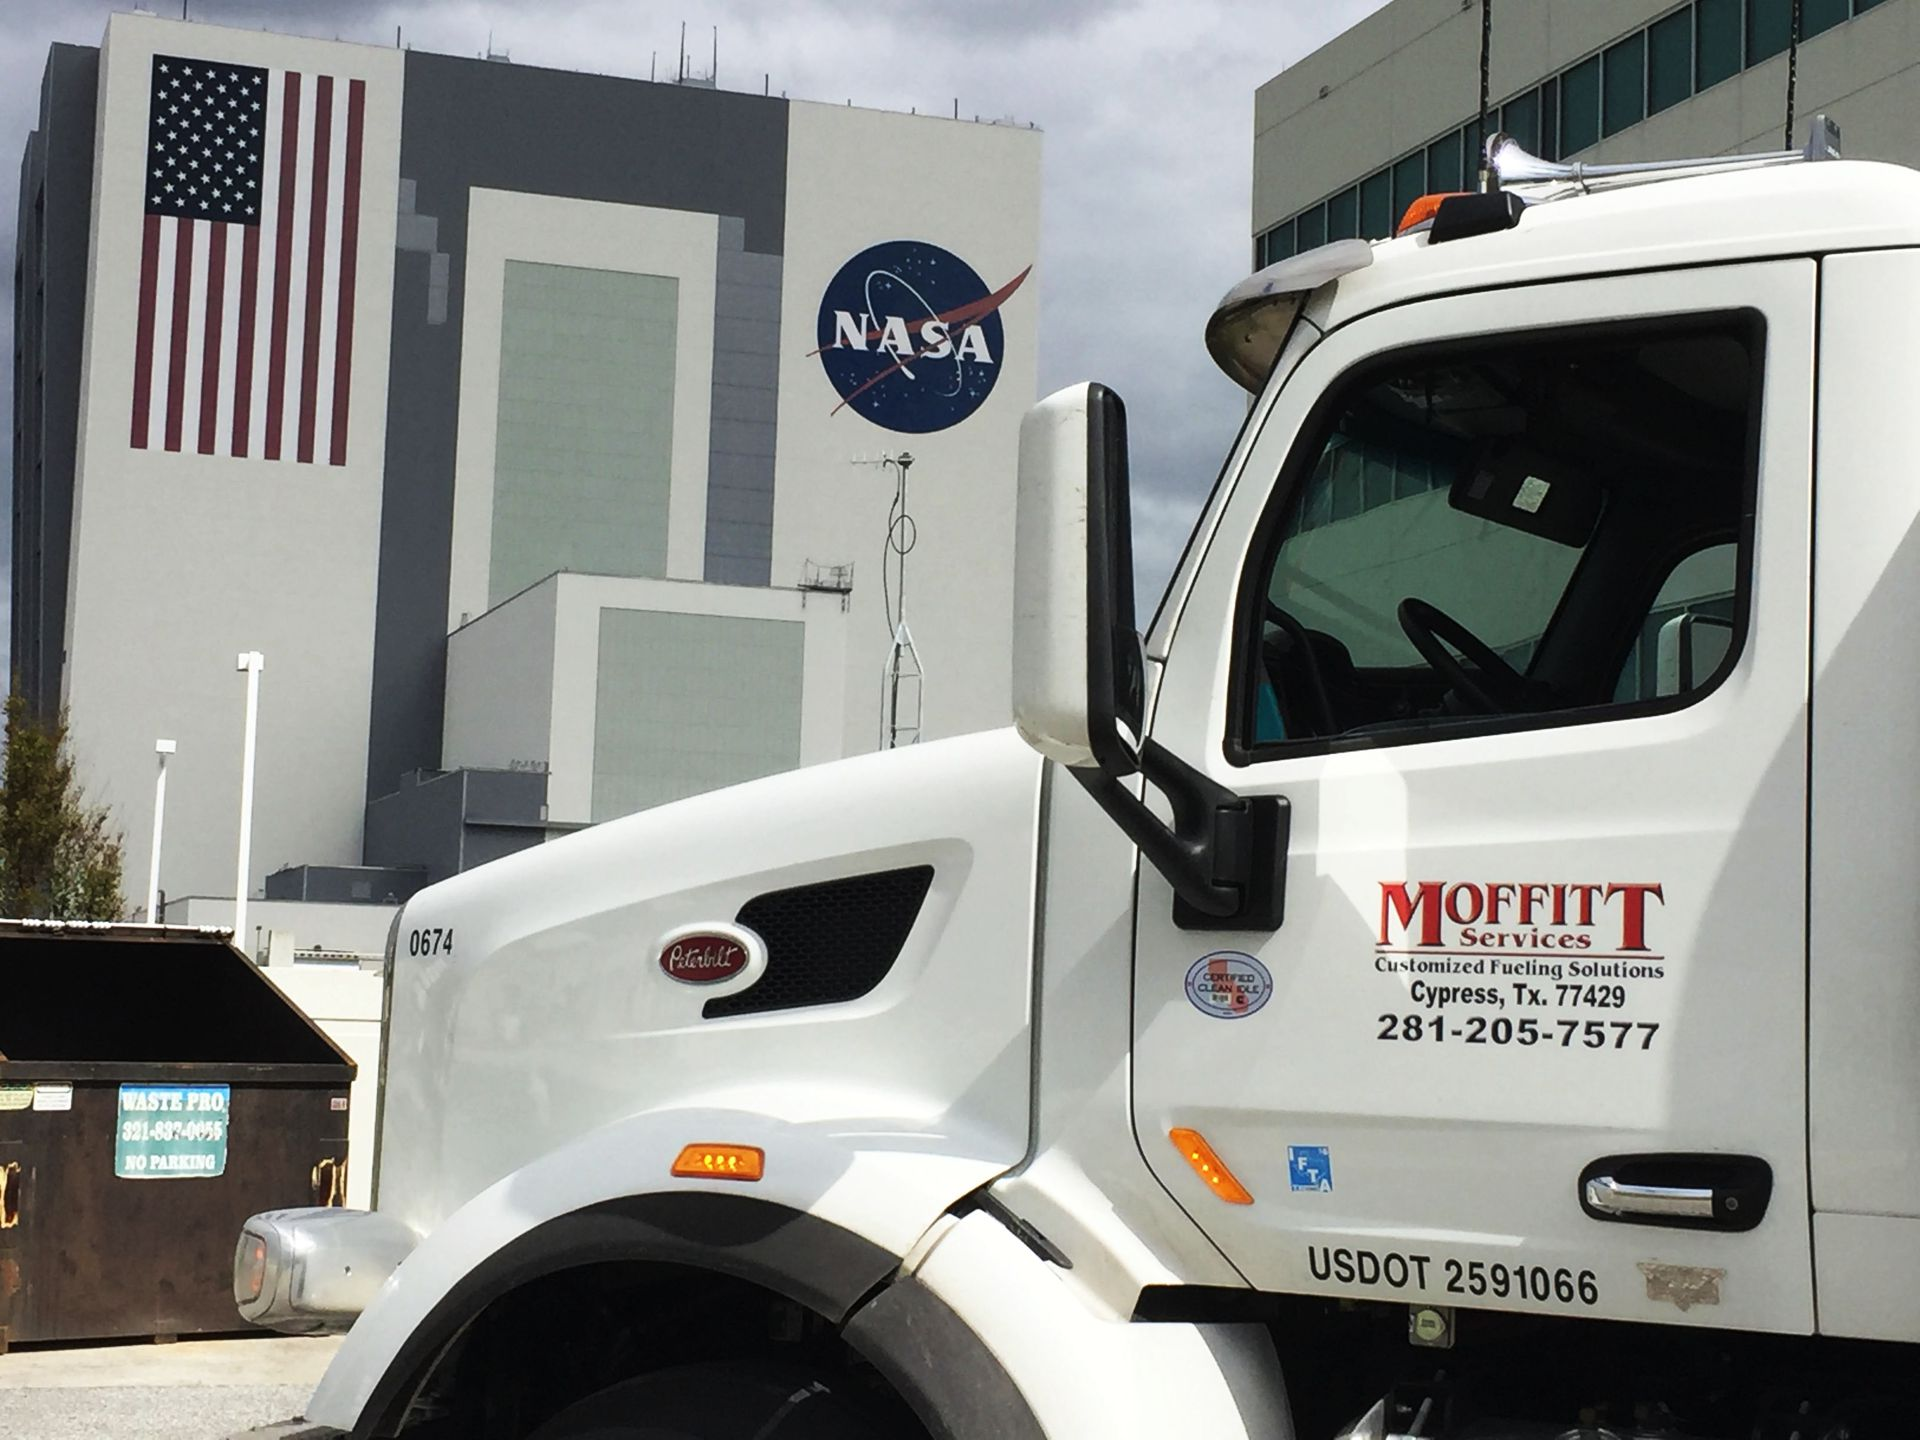 moffitt-nasa-s